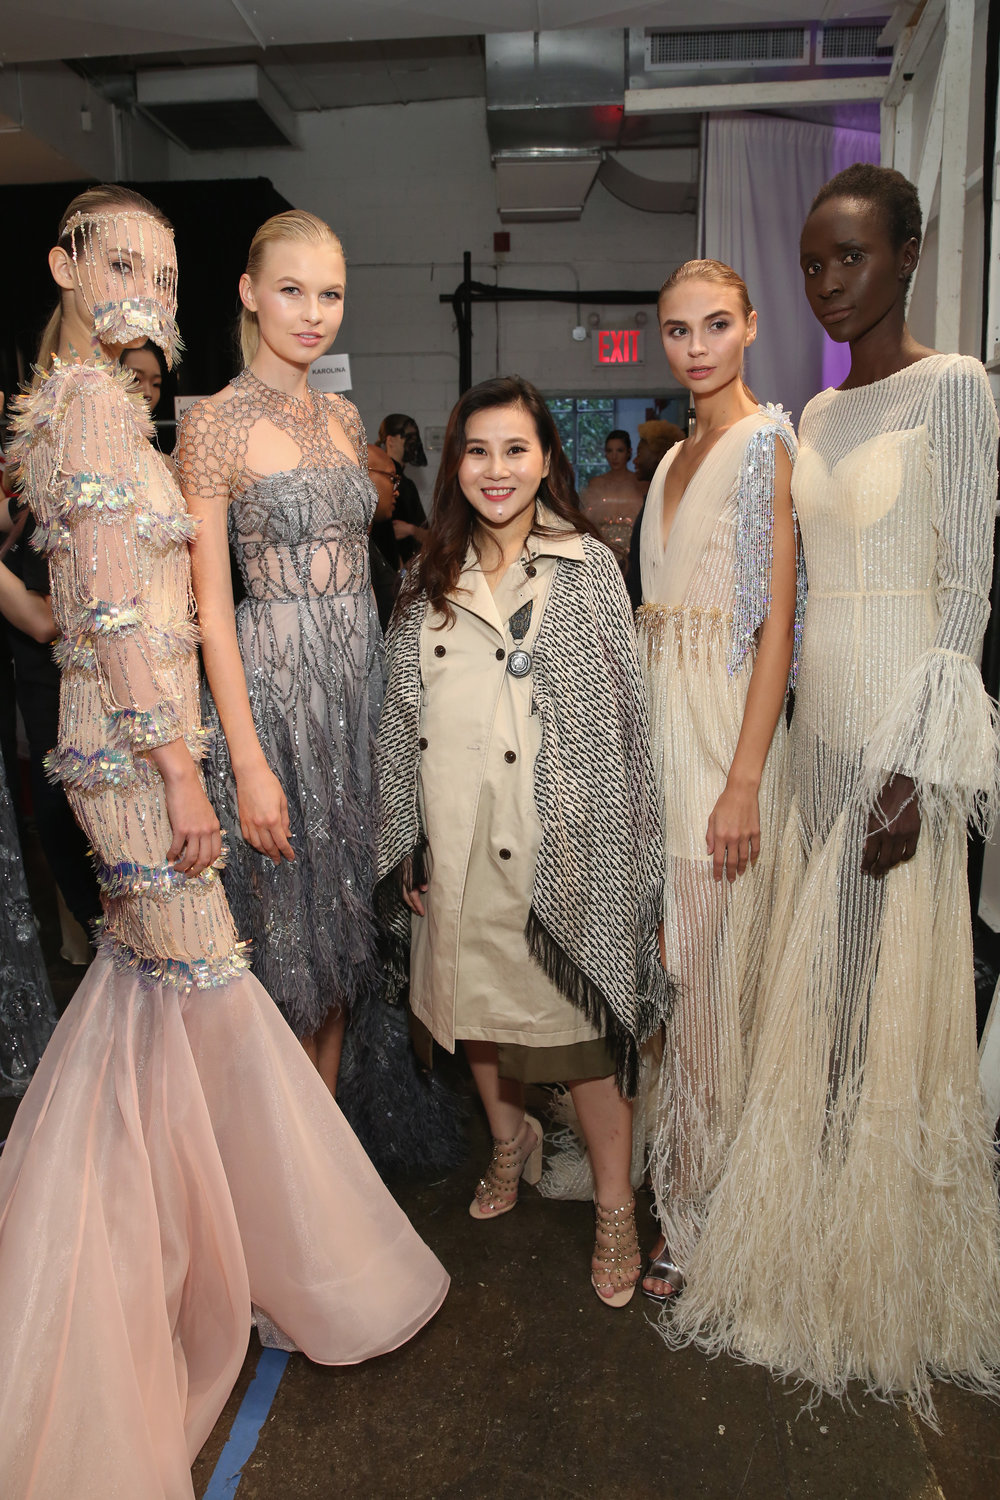 Designer Ruby Fang poses with models backstage at the Ruby Fang fashion show during September 2018 New York Fashion Week: The Shows at Industria Studios in New York City. (Photo by Monica Schipper/Getty Images for Ruby Fang)